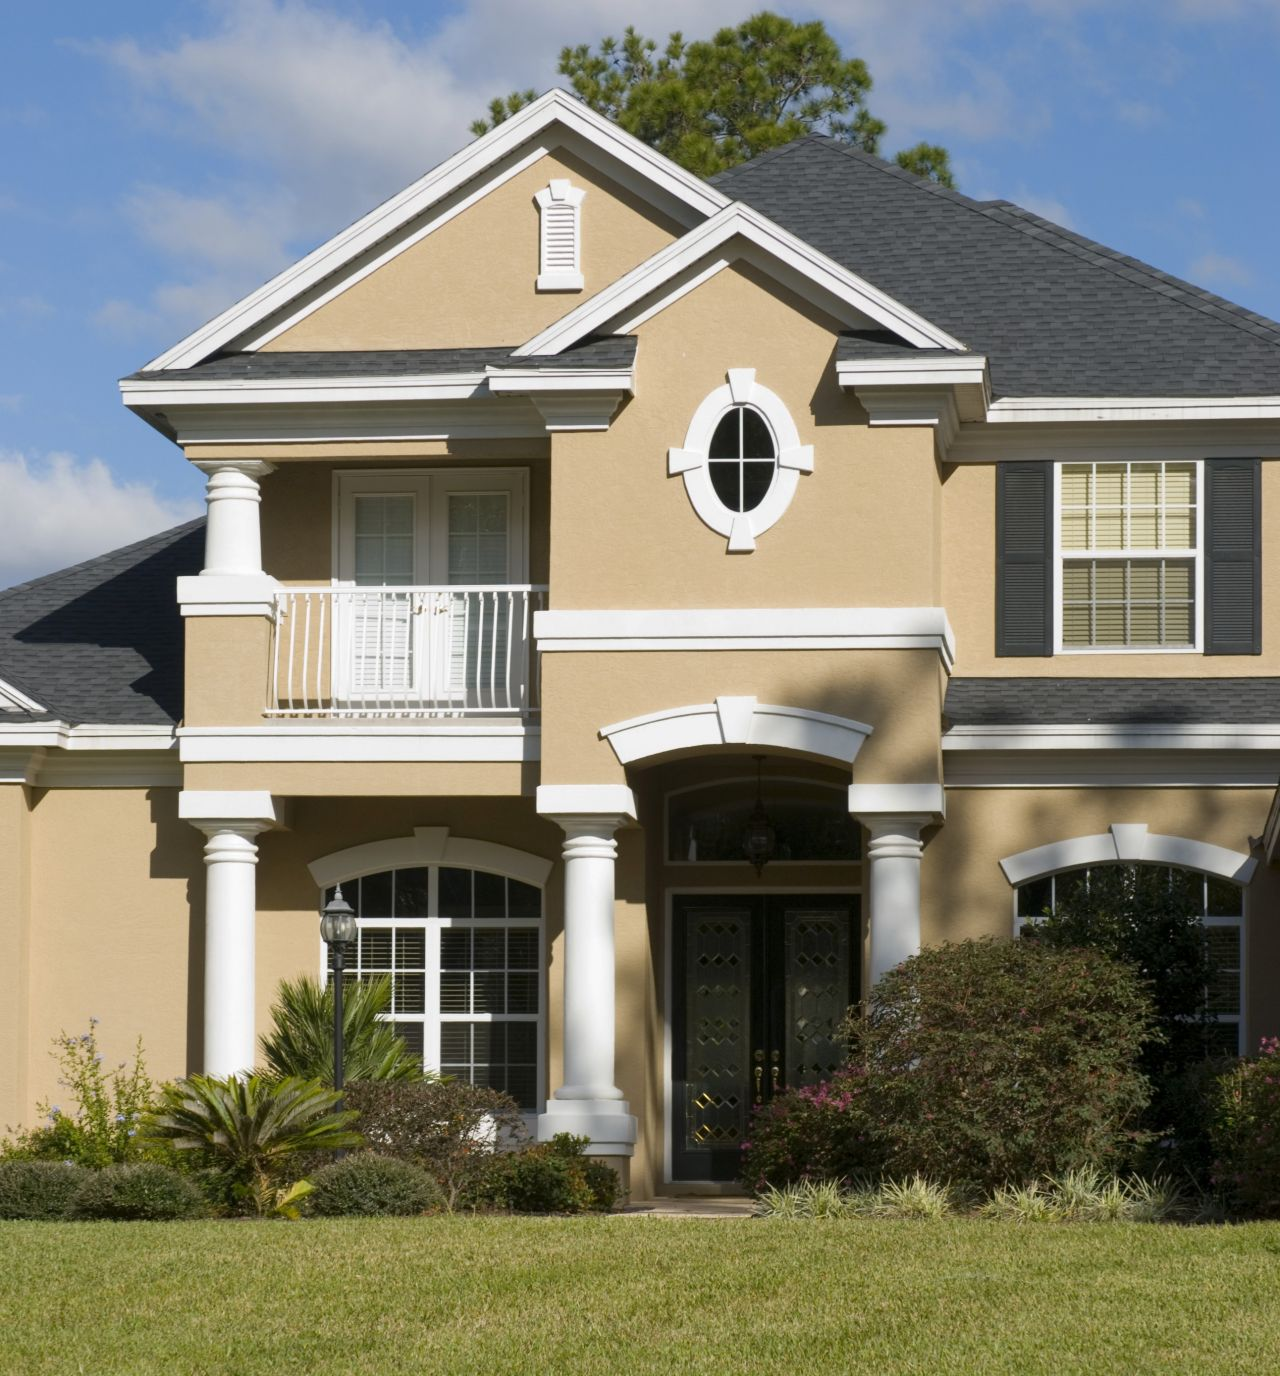 Wall Colour Of House Exterior Paint Schemes And Consider Your Surroundings